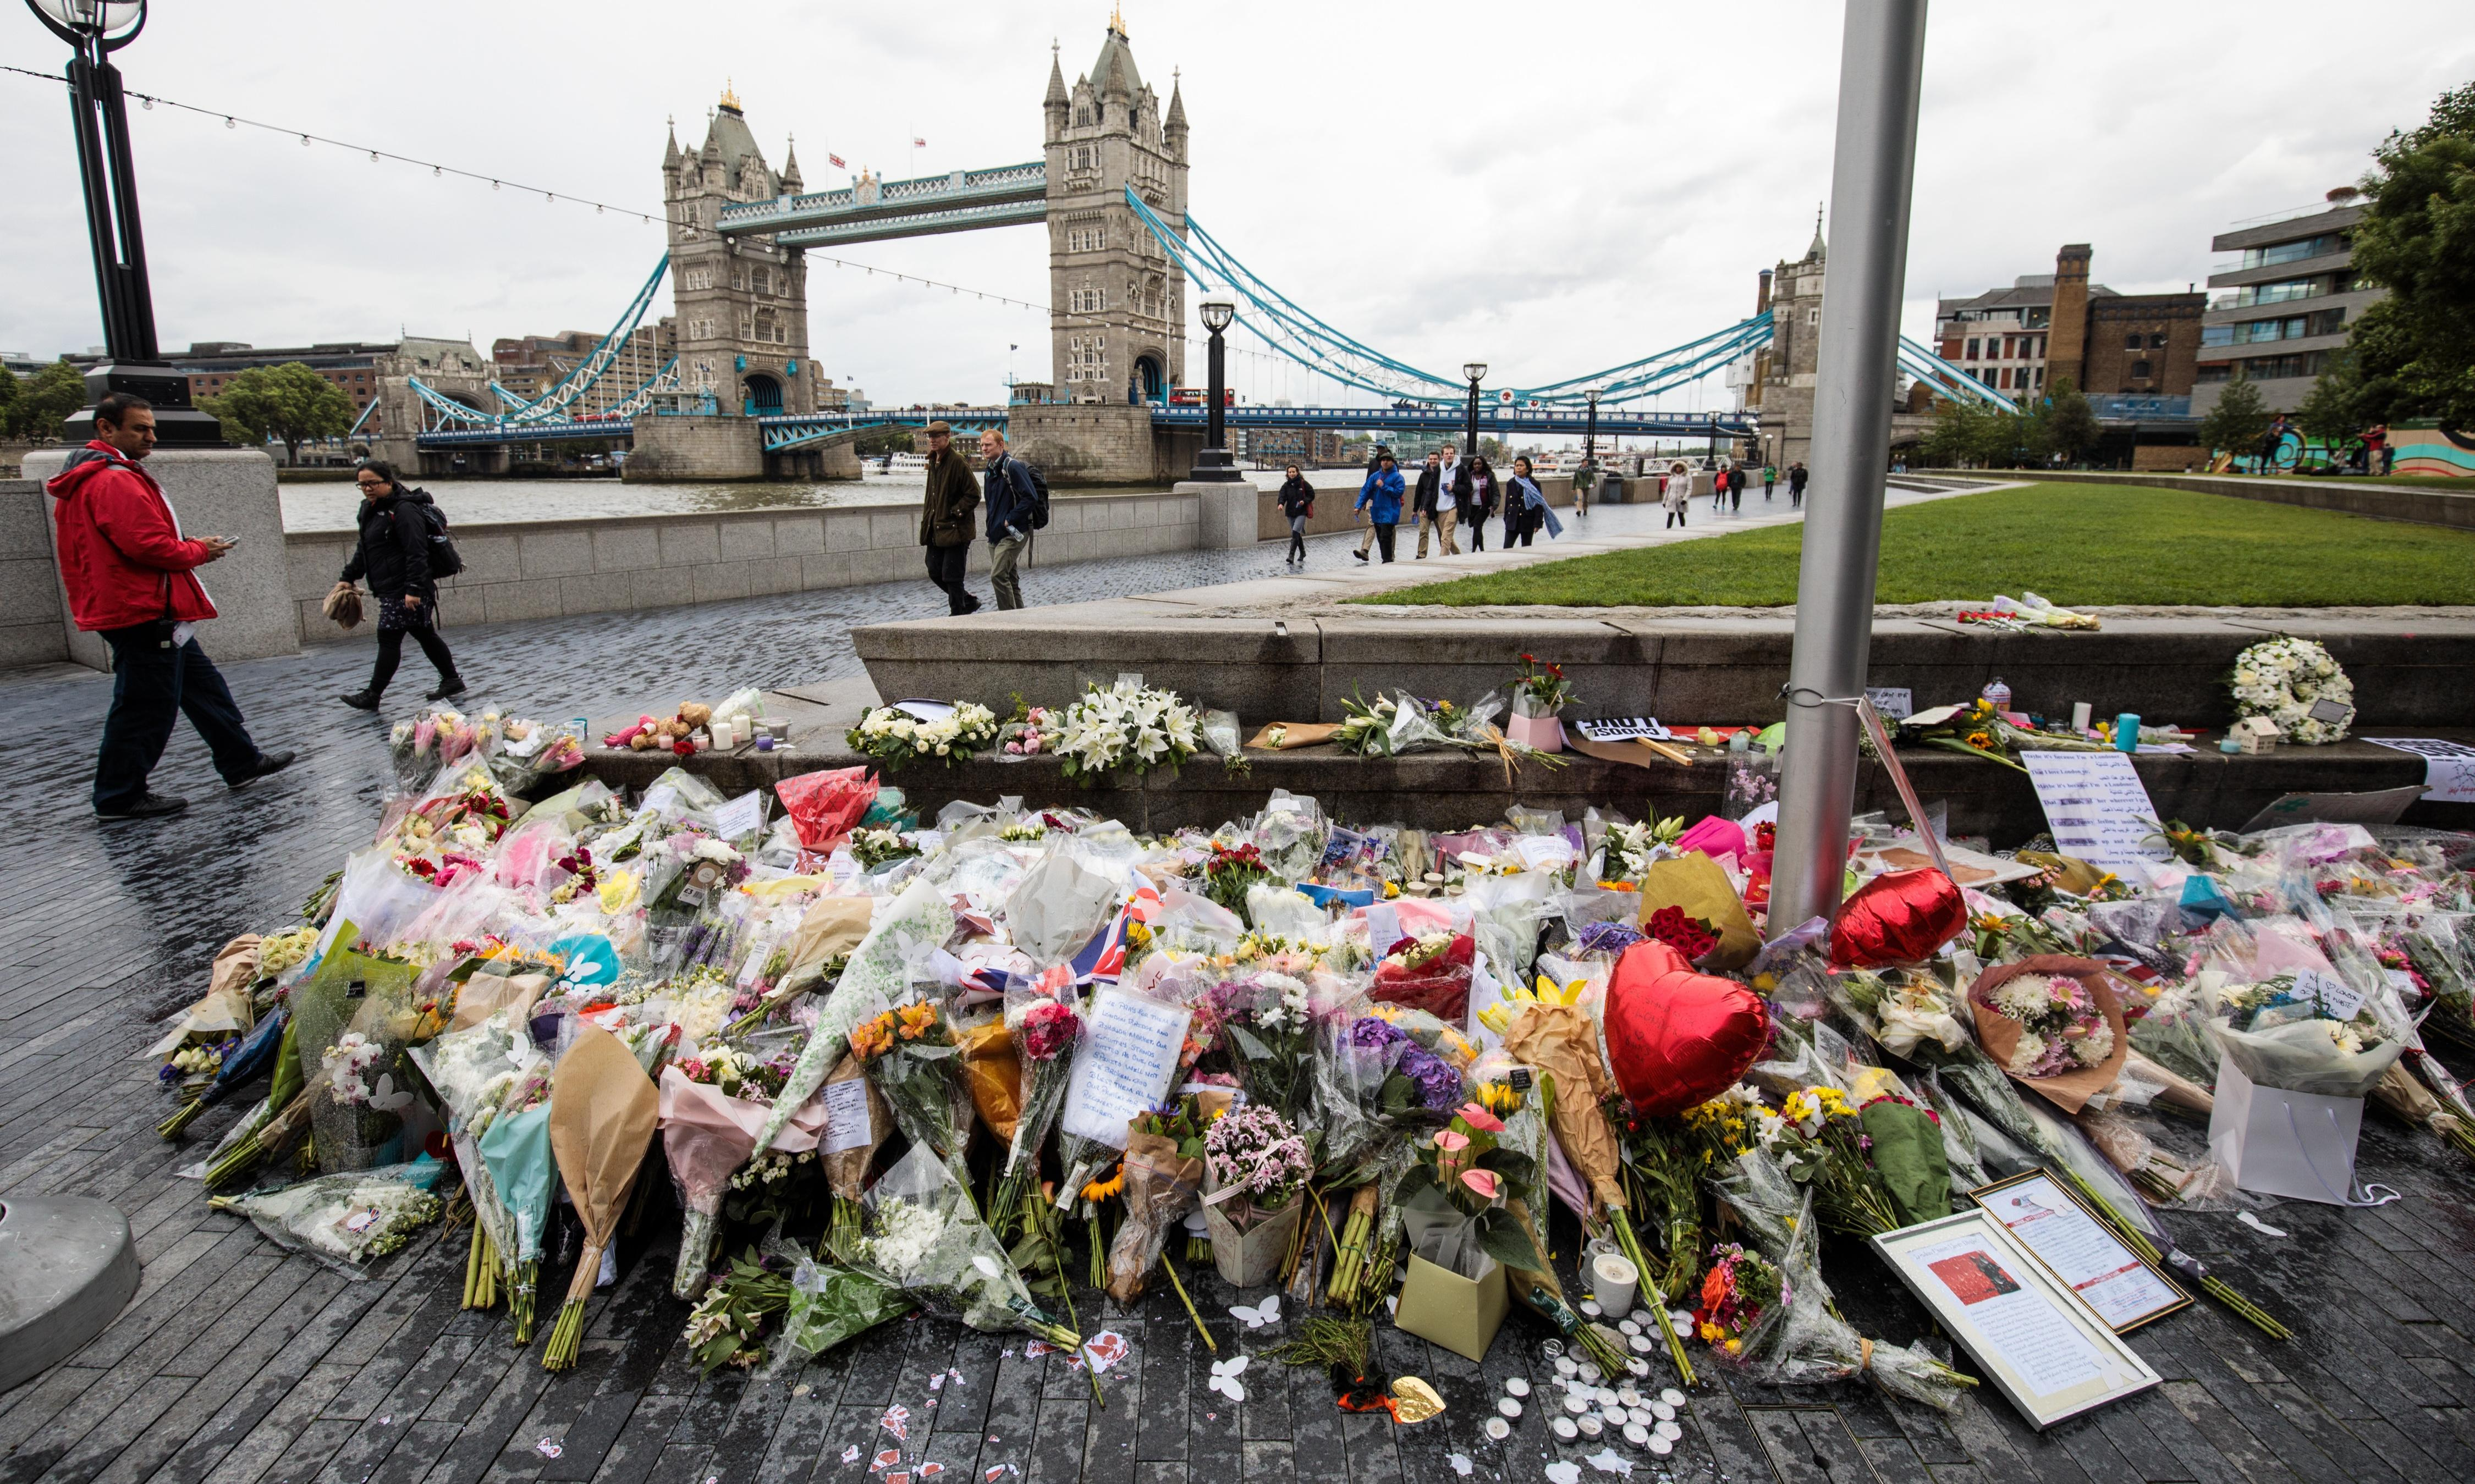 London Bridge inquest: man threw chair to distract attackers from victims